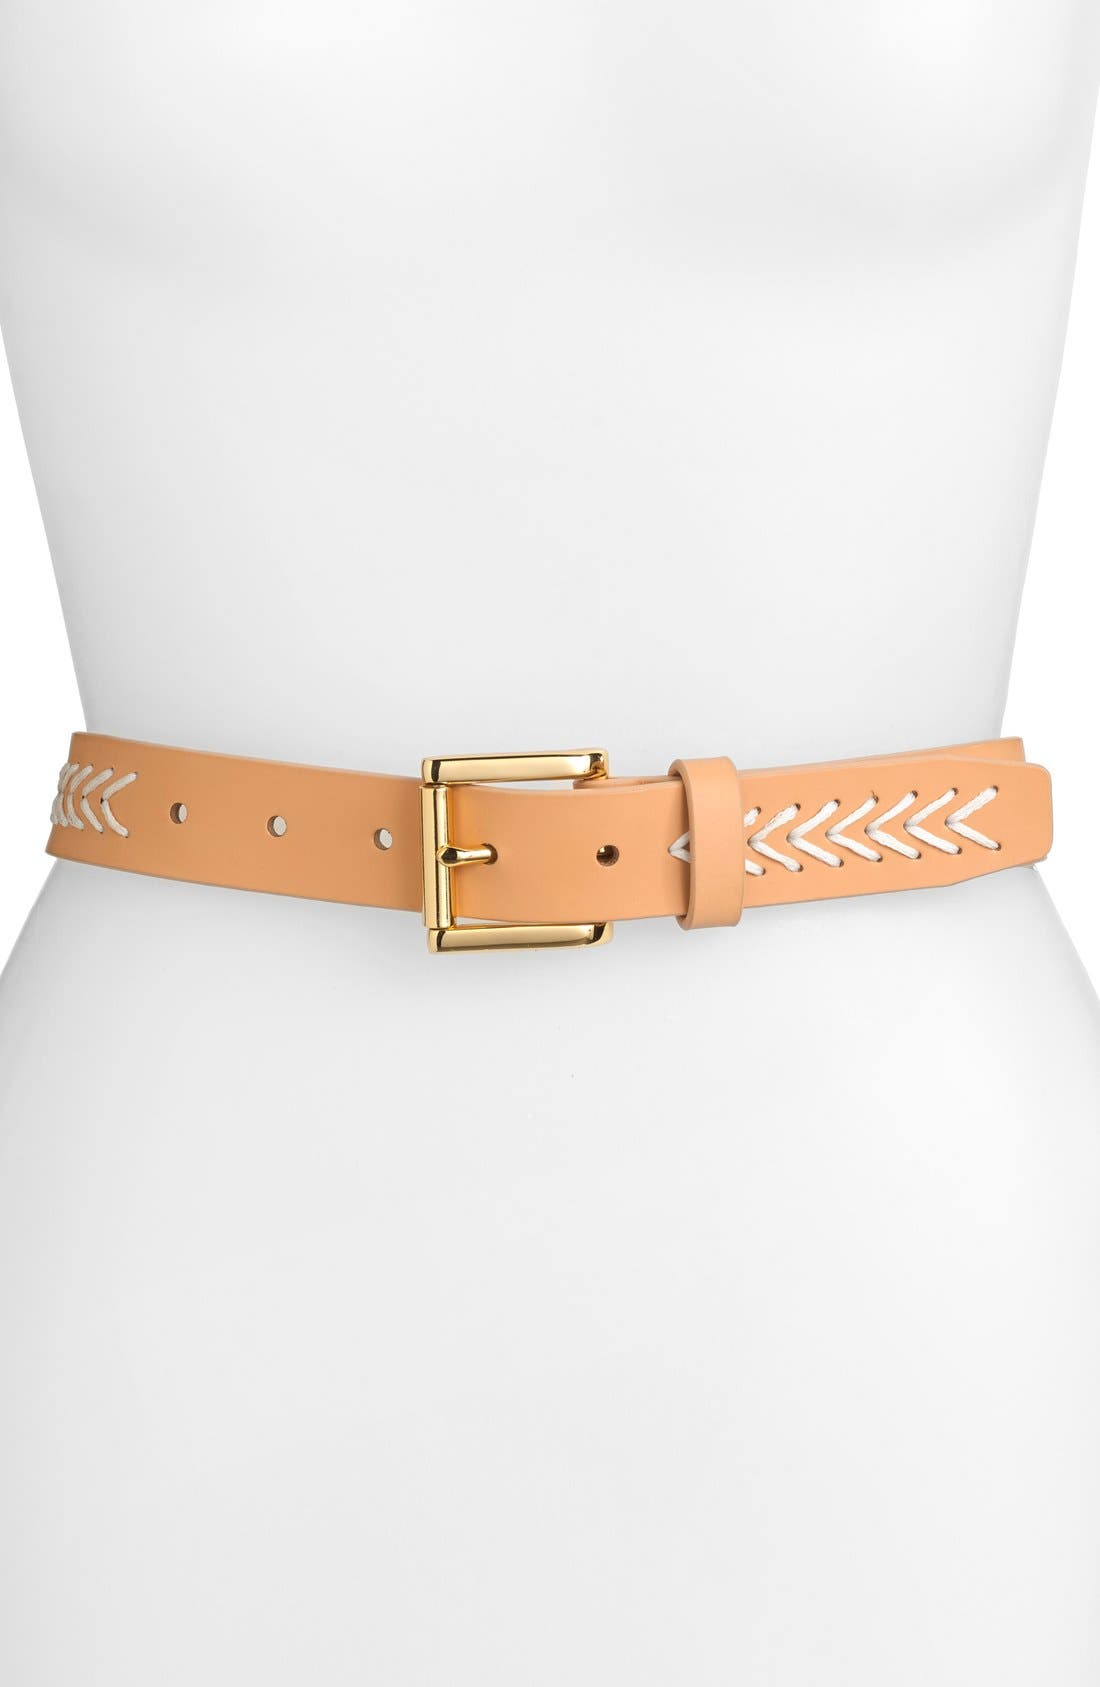 Main Image - Vince Camuto Waxed Cord & Leather Belt